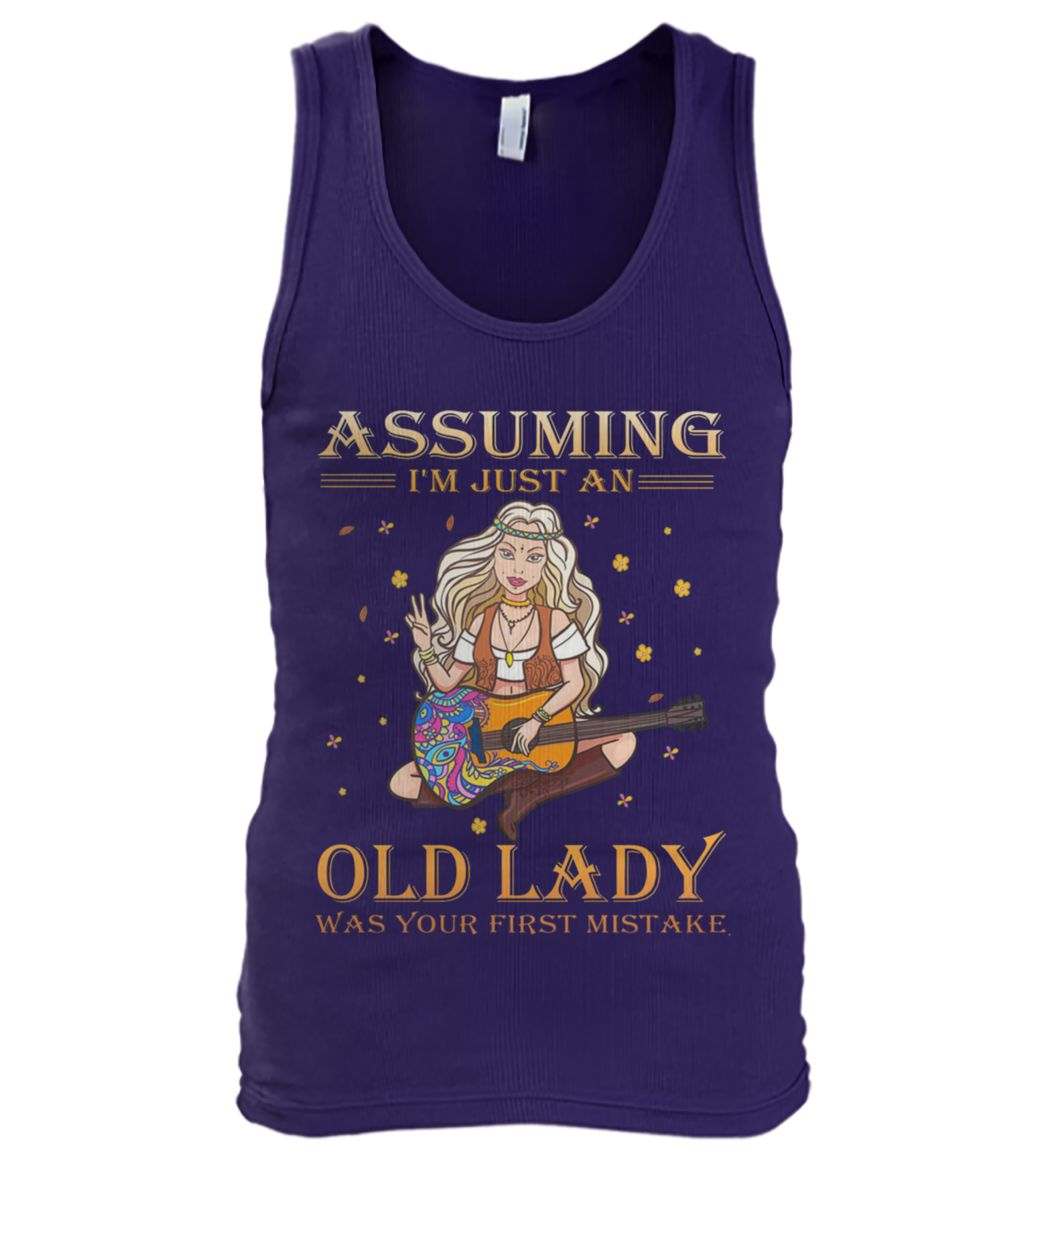 Hippie style assuming I'm just an old lady was your first mistake tank top